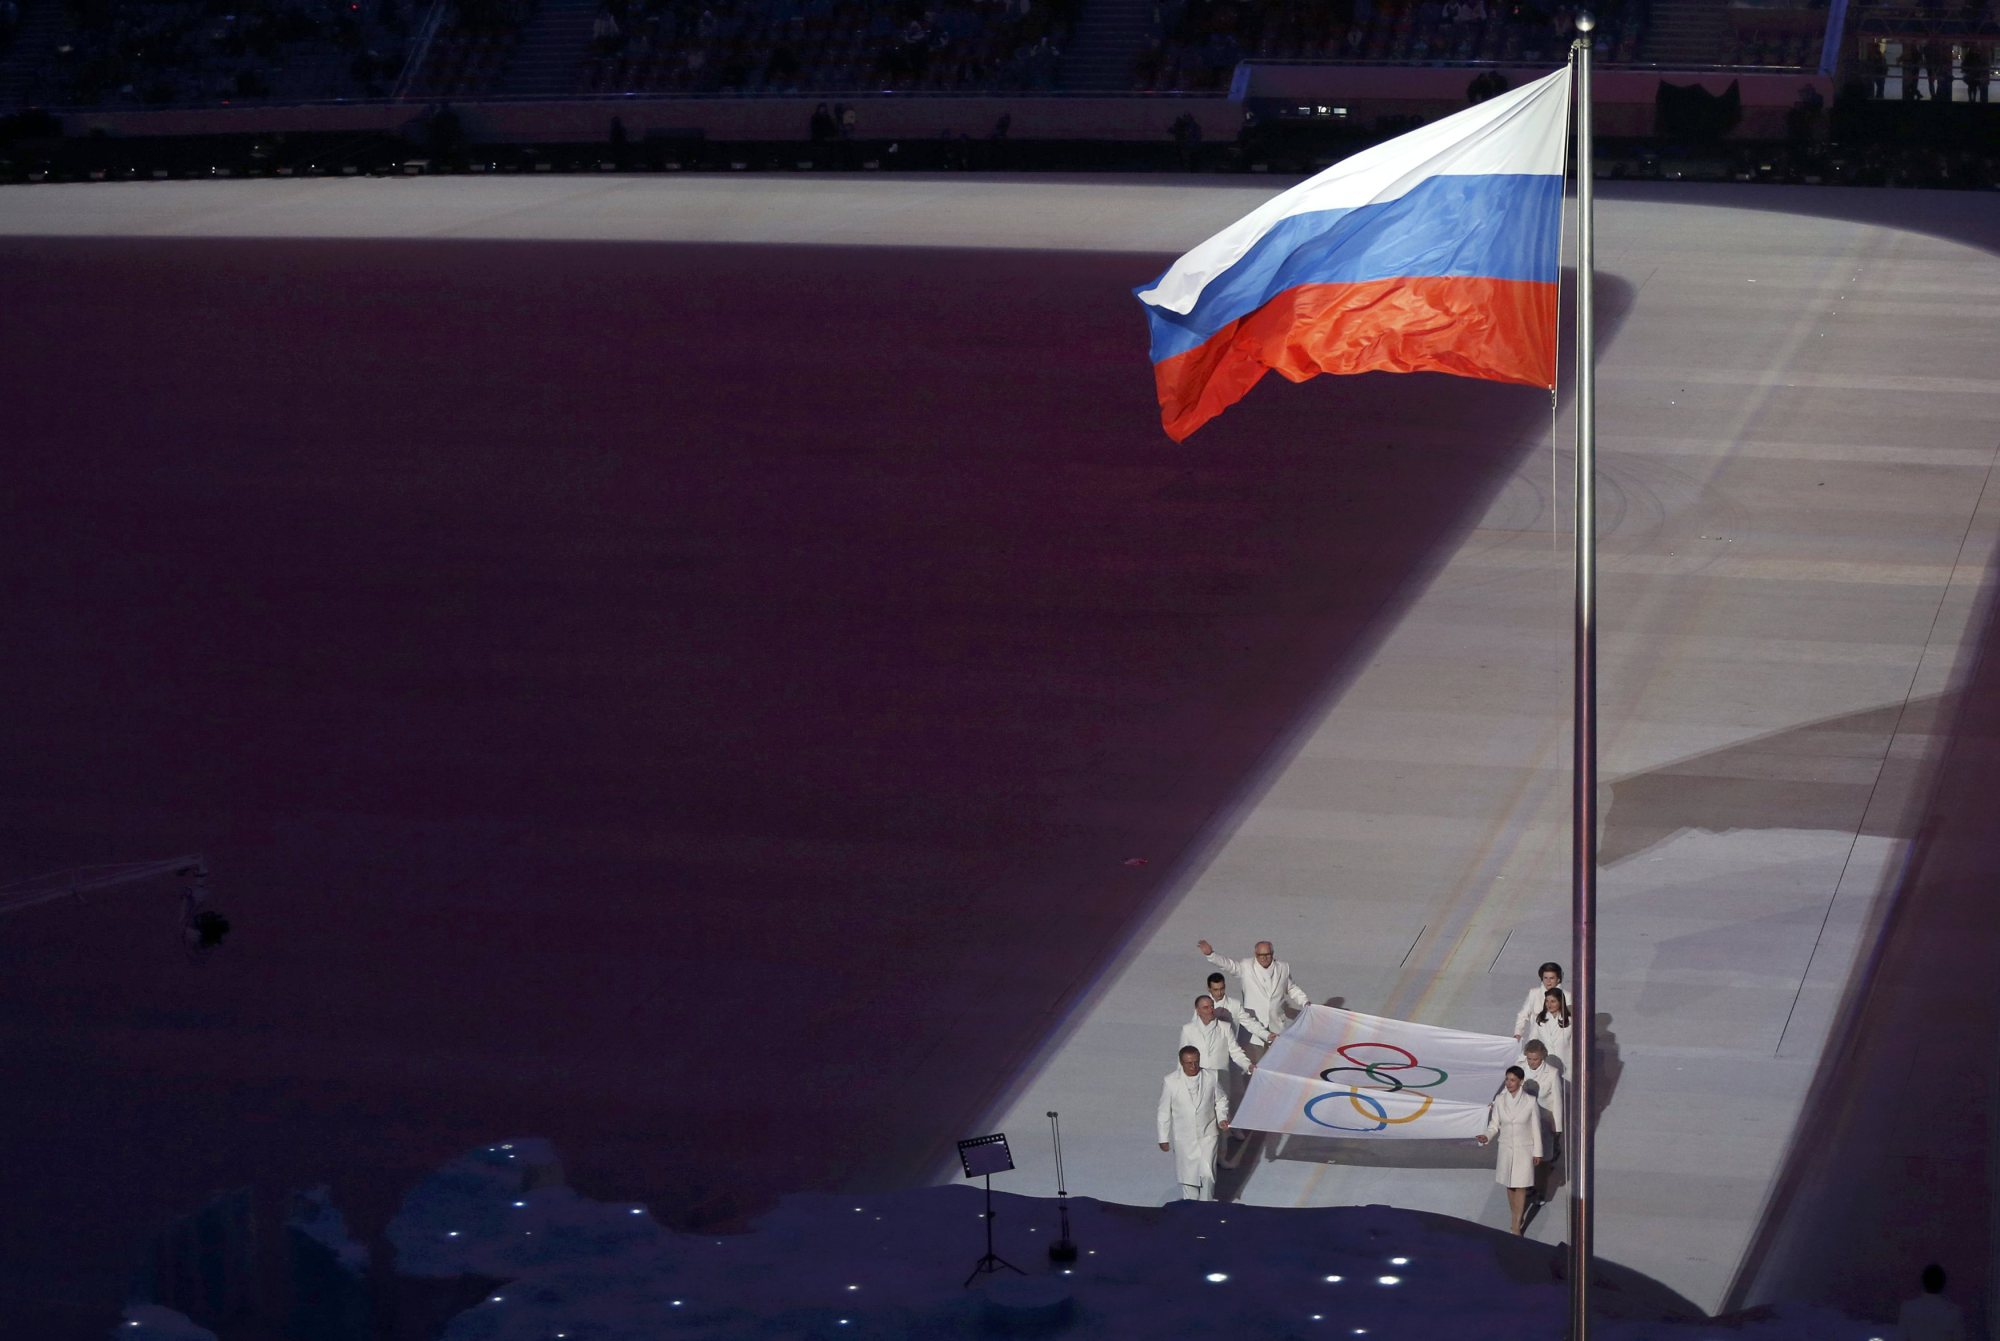 The Olympic flag is paraded past the Russian flag.